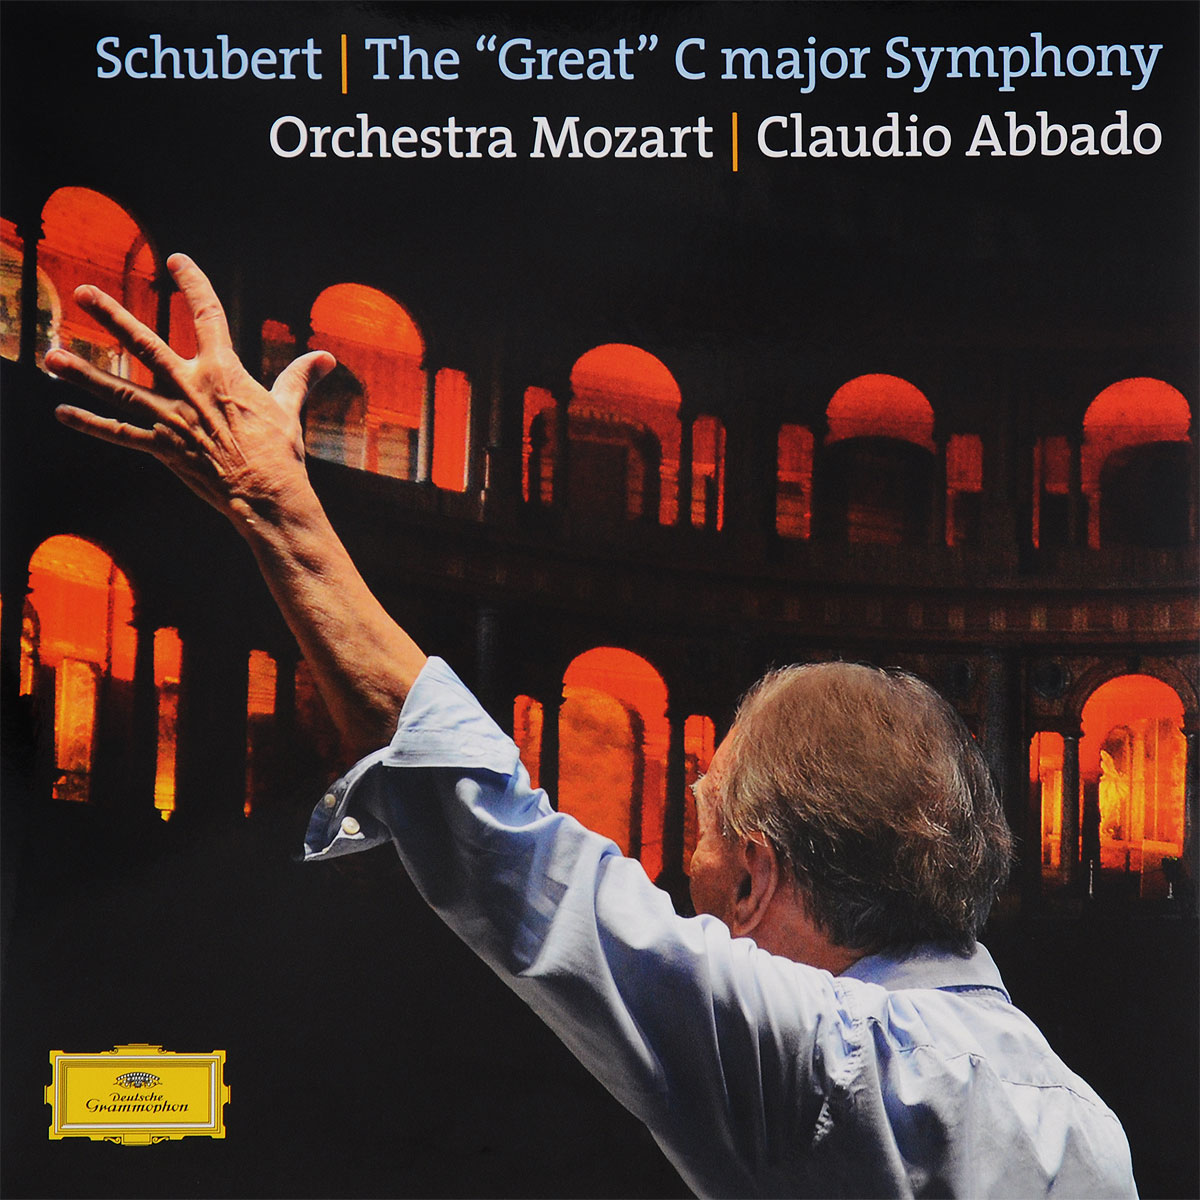 Клаудио Аббадо,Orchestra Mozart Claudio Abbado. Schubert. The Great C Major Symphony (2 LP) клаудио аббадо orchestra mozart claudio abbado schubert the great c major symphony 2 lp